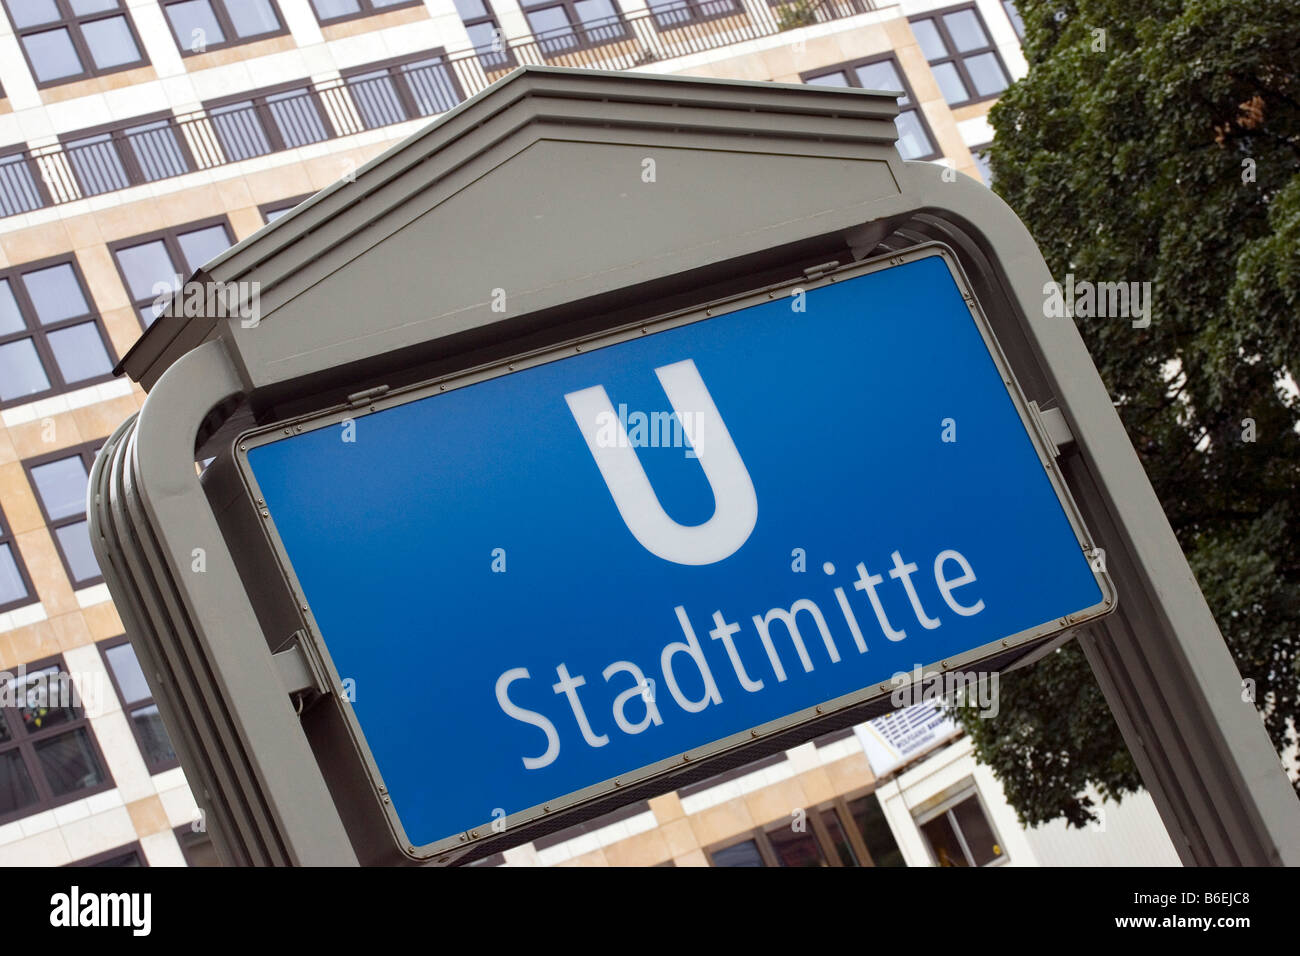 Sign for a tube entrance in the city centre of Berlin, Germany, Europe - Stock Image